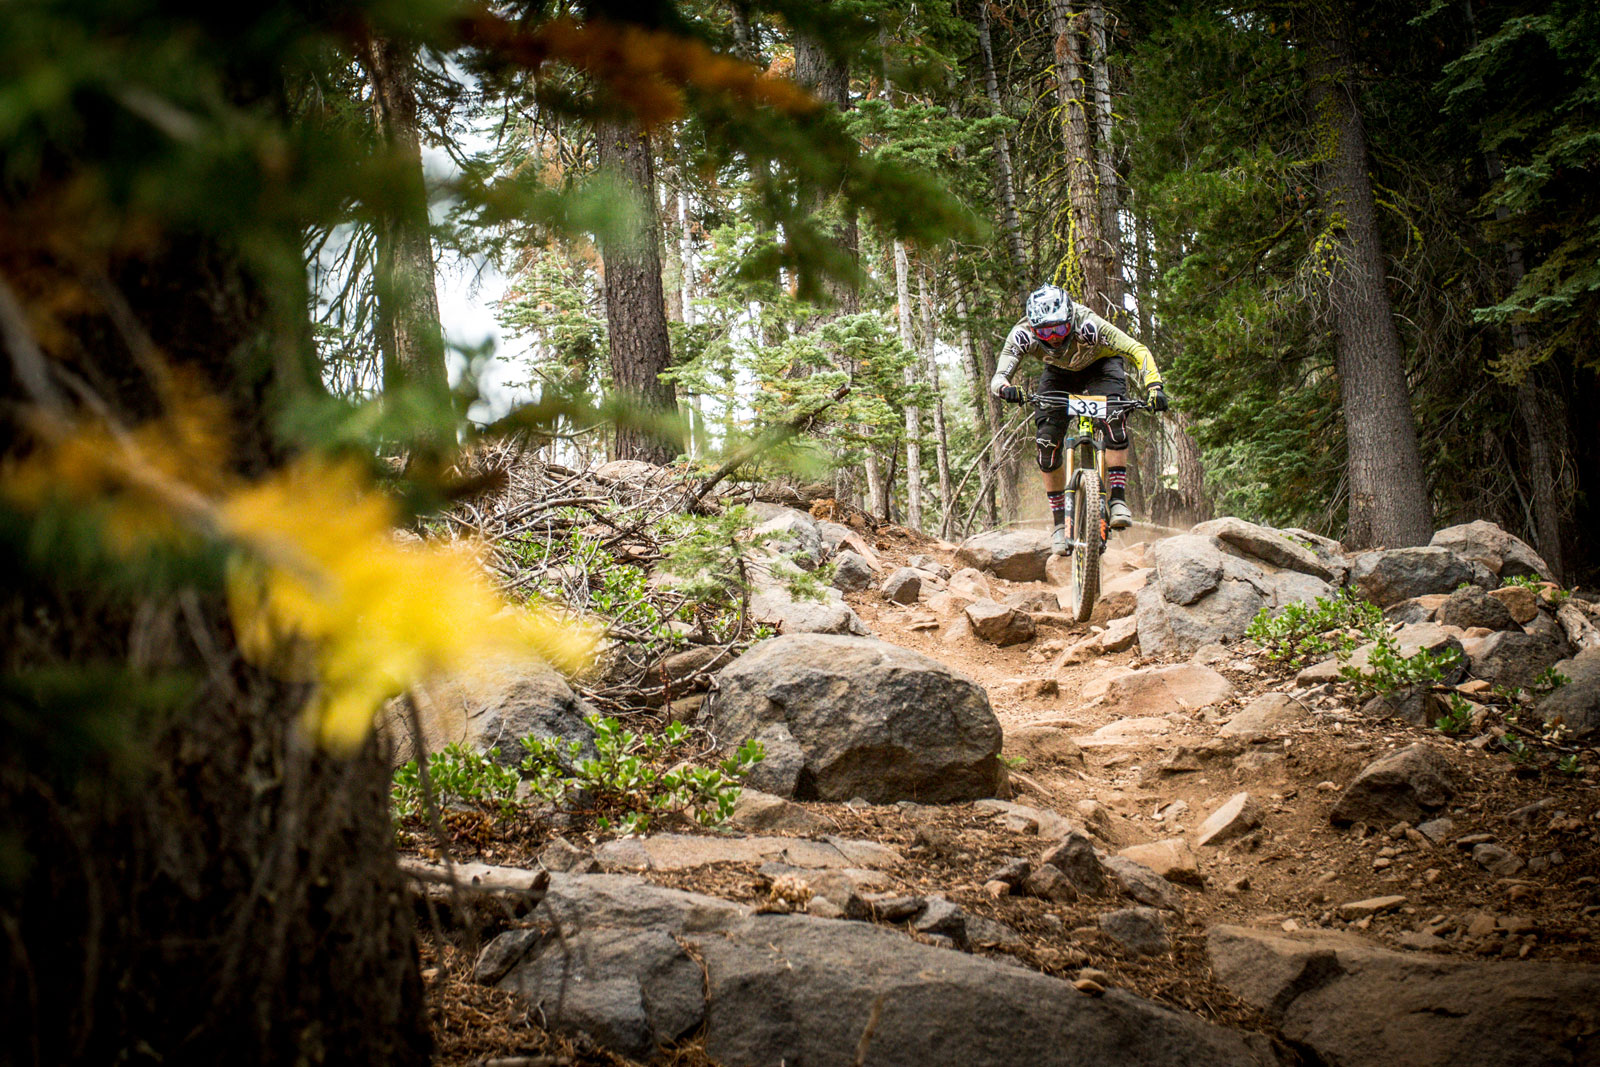 CES California Enduro Series Enduro World Series 2018